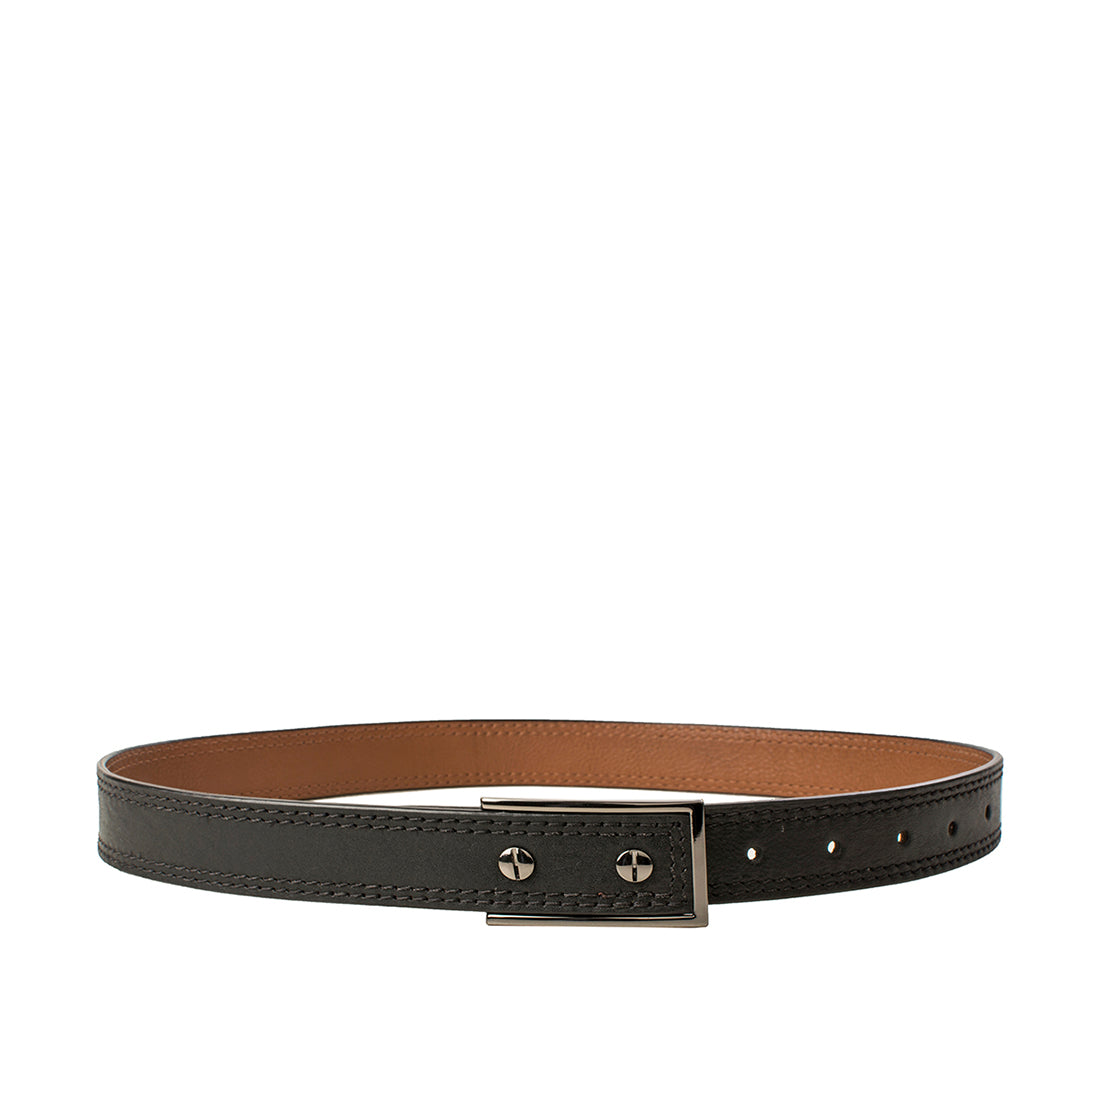 BORIS I MENS NON-REVERSIBLE BELT